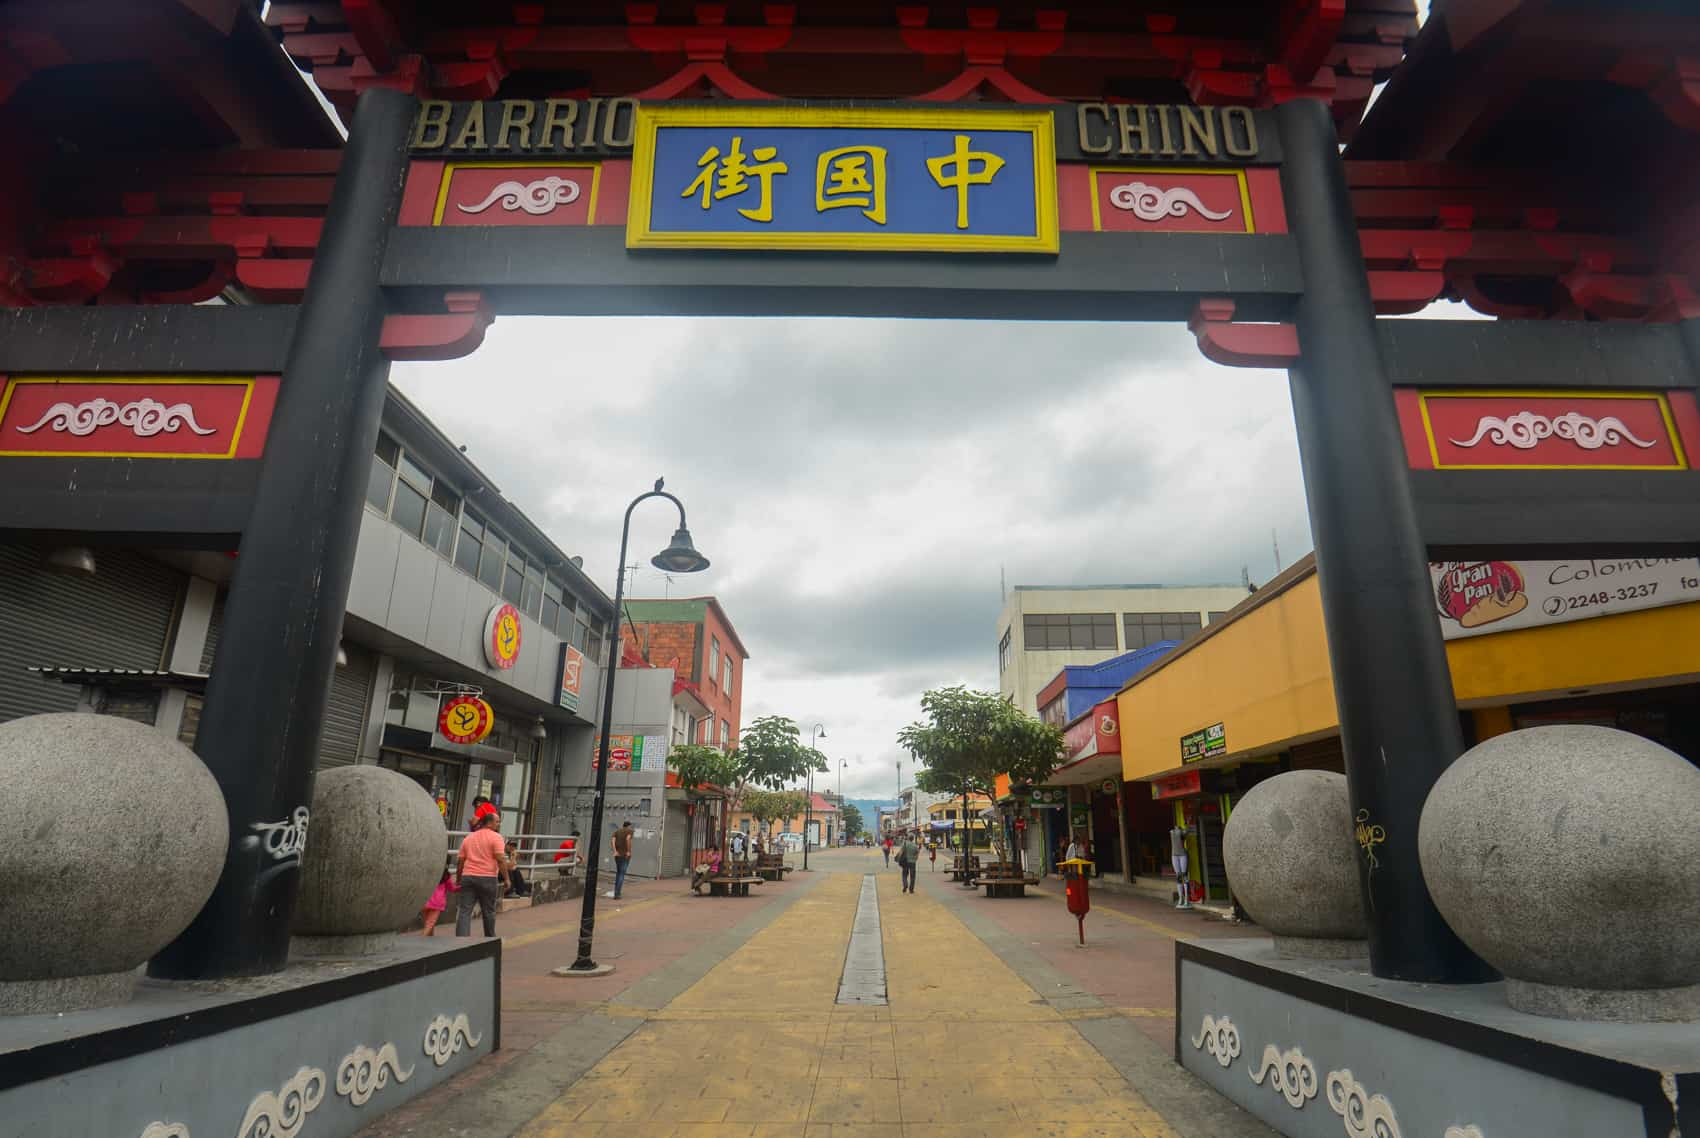 Barrio Chino archway